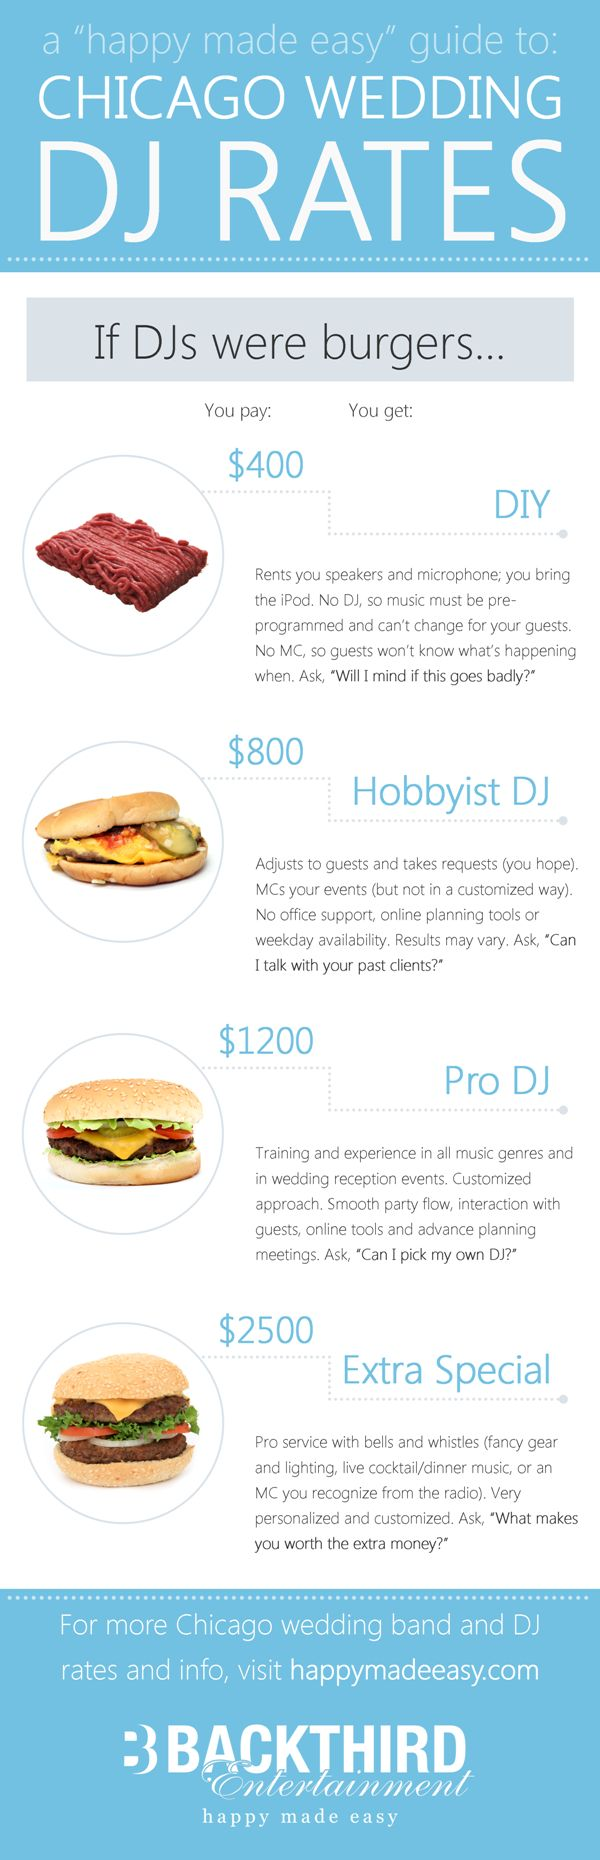 What does a wedding DJ cost in Chicago? If DJs were hamburgers, here's what you'd get for your money...